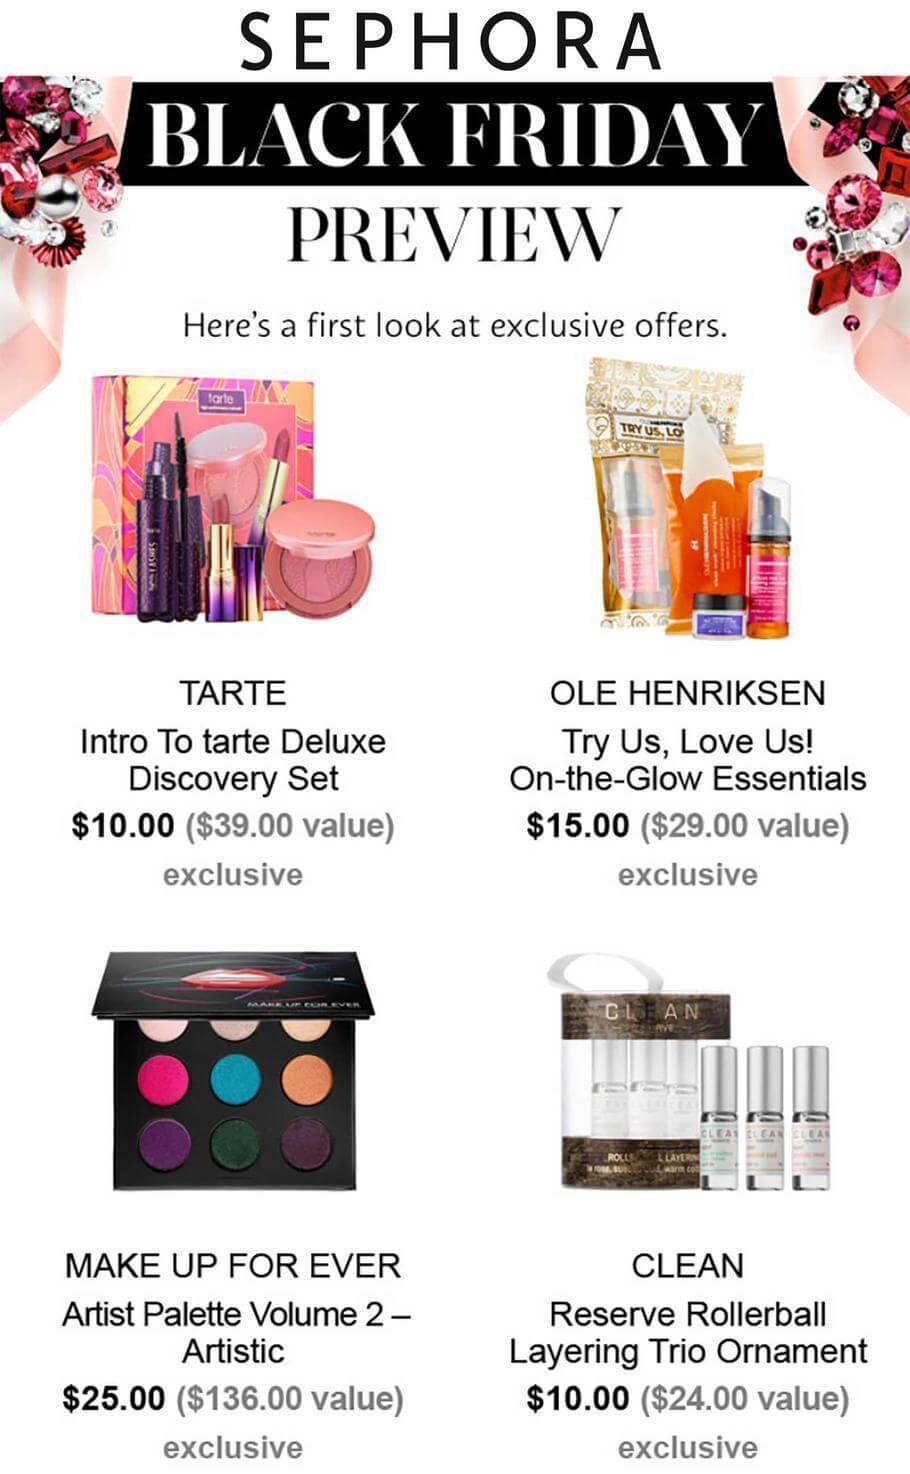 Sephora Black Friday deals, 2017